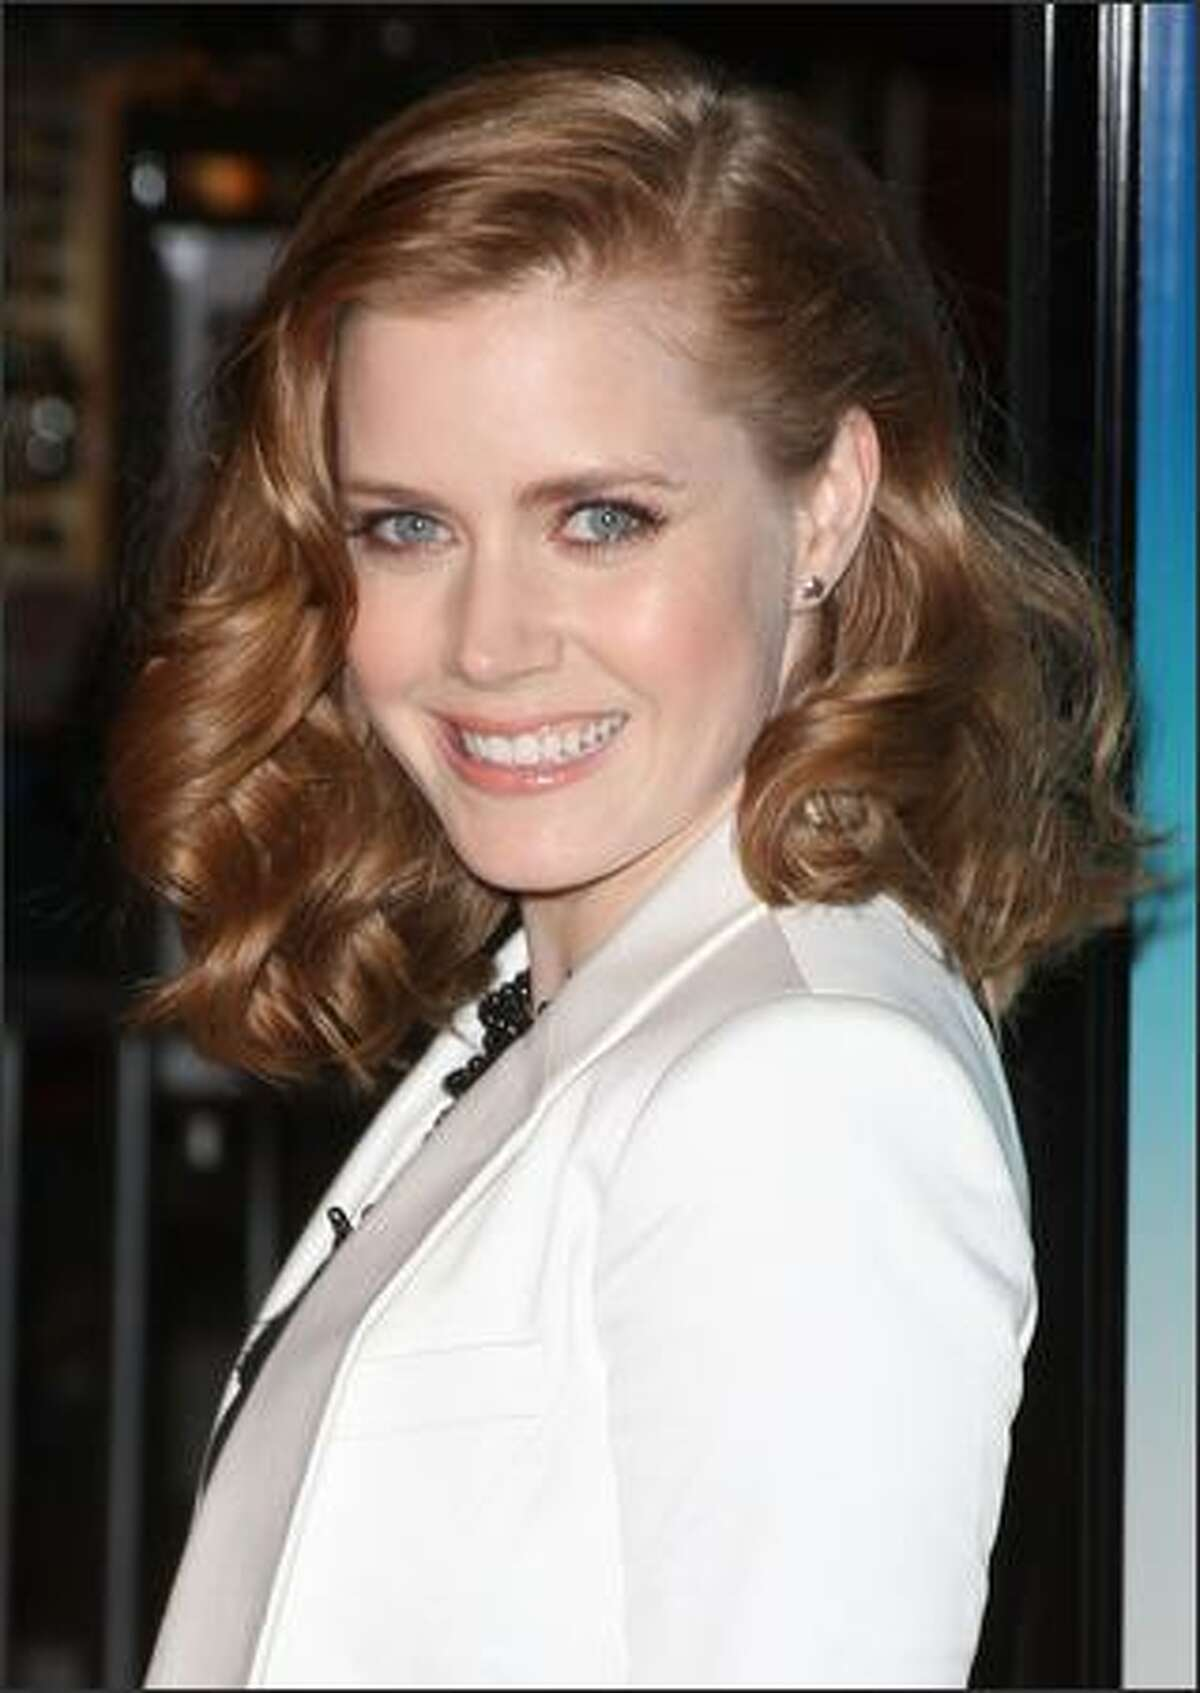 Actress Amy Adams arrives at the Overture Film's screening of 'Sunshine Cleaning' held at Pacific Theaters at The Grove in Los Angeles, California.